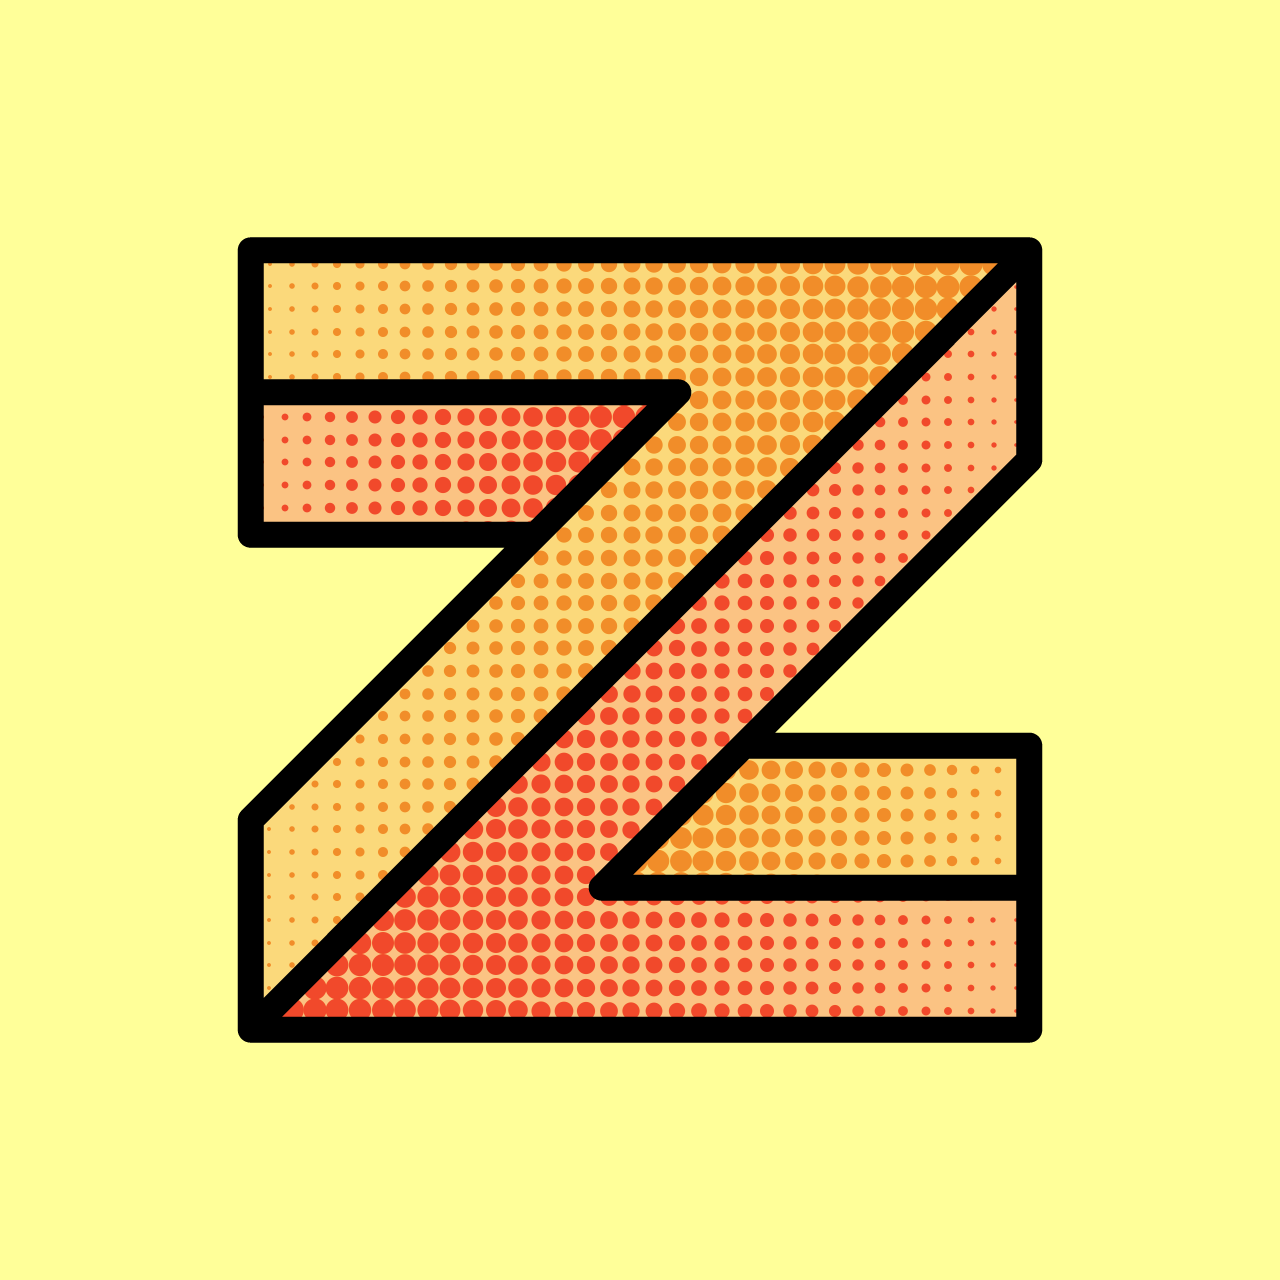 My Z submission for 36 Days of Type